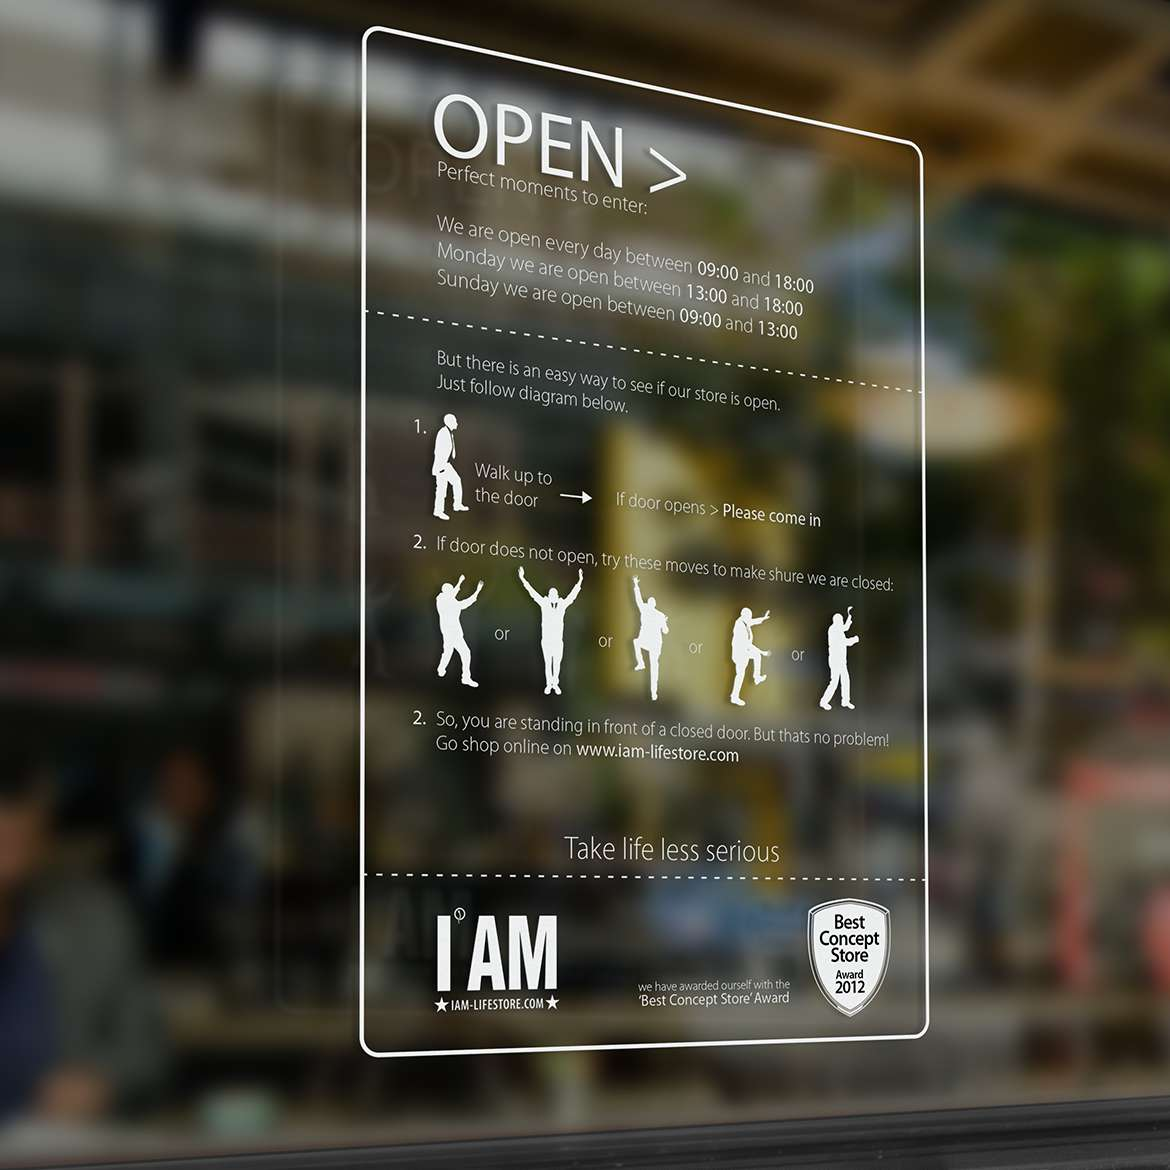 I AM Lifestore openingsuren